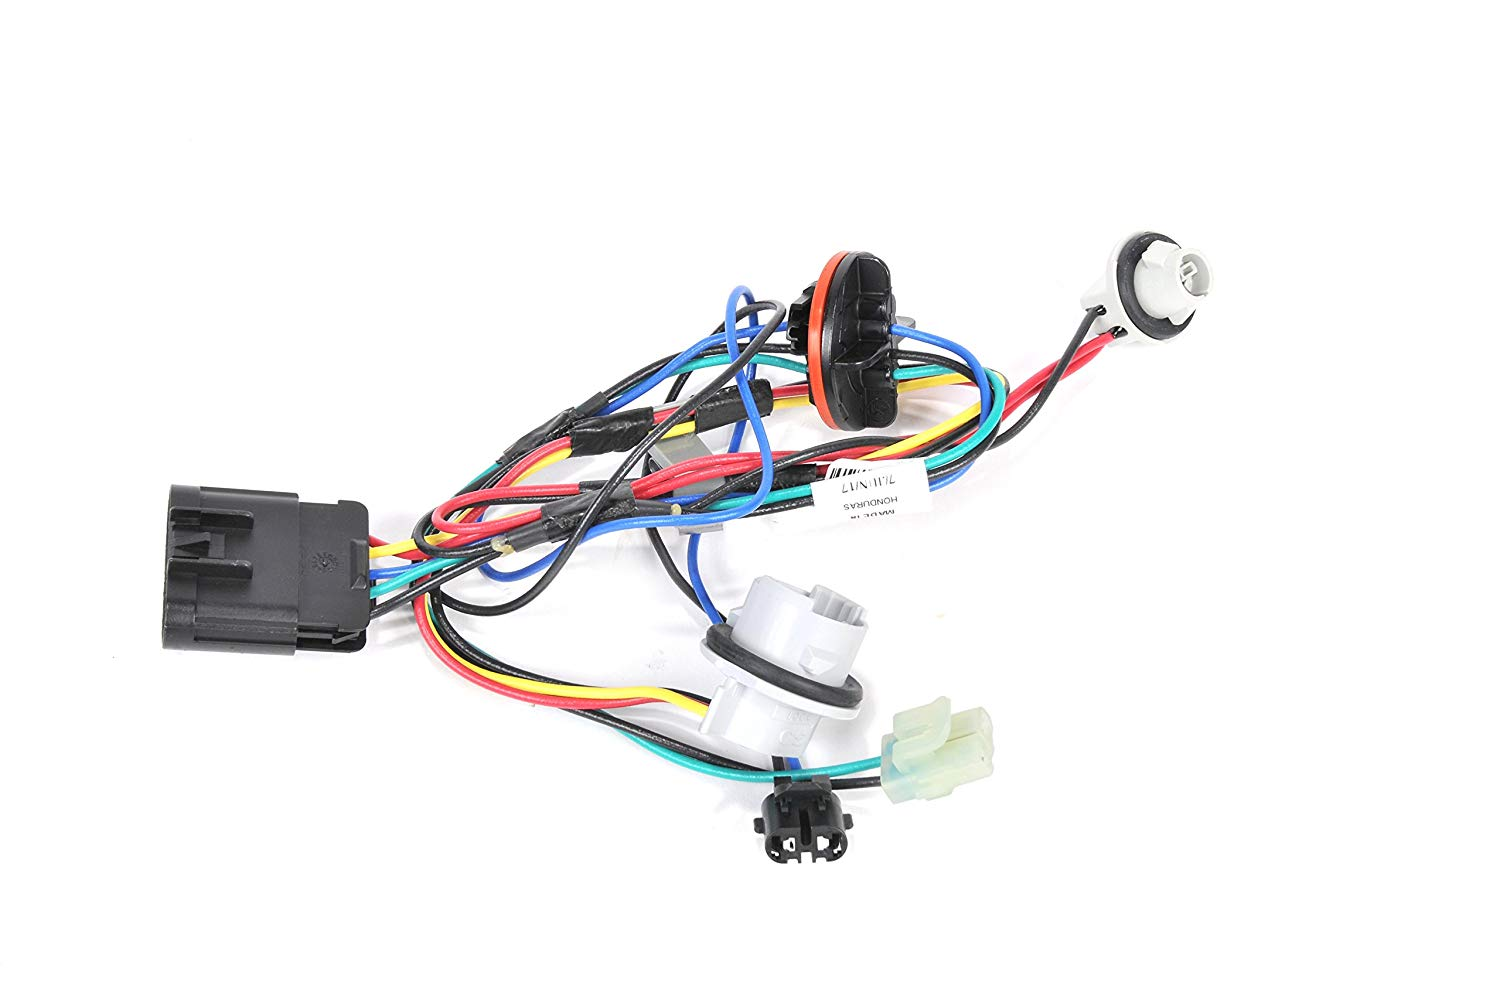 hight resolution of cheap headlight switch wiring find headlight switch wiring deals onget quotations acdelco 25842432 gm